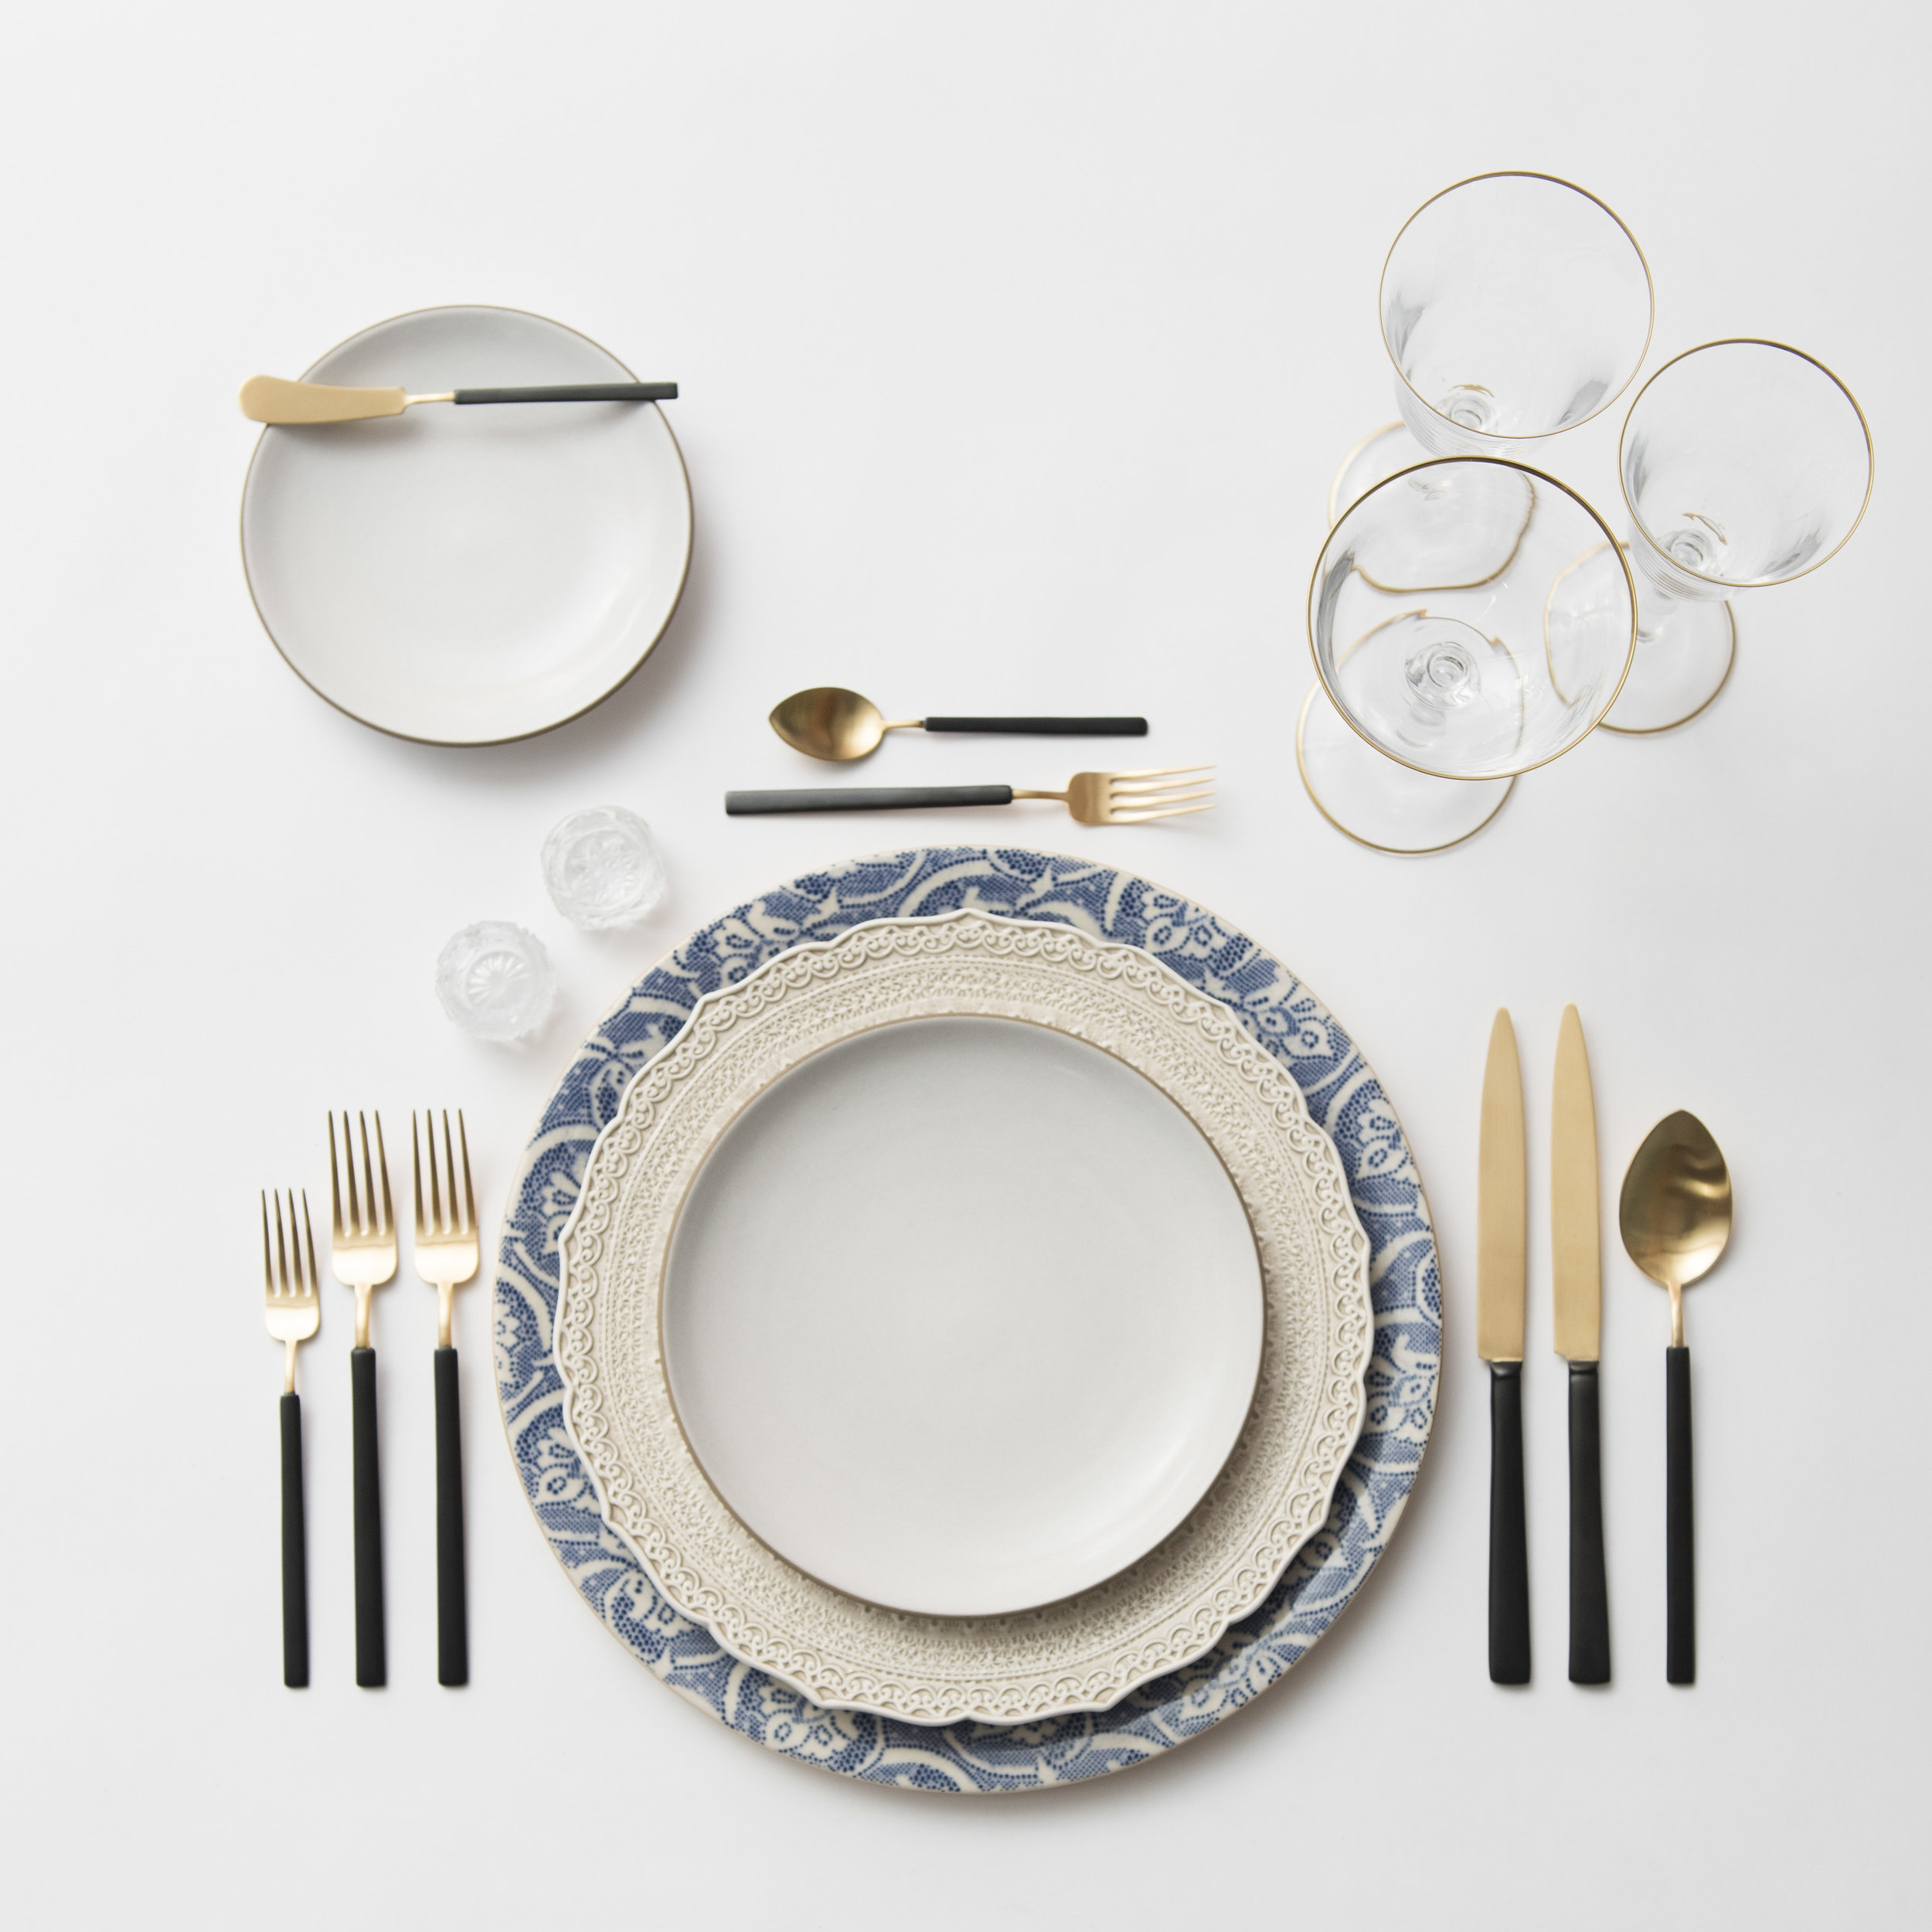 RENT: Blue Fleur de Lis Chargers + Lace Dinnerware in White + Heath Ceramics in Opaque White + Axel Flatware in Matte 24k Gold/Black + Chloe 24k Gold Rimmed Stemware + Antique Crystal Salt Cellars  SHOP: Chloe 24k Gold Rimmed Stemware